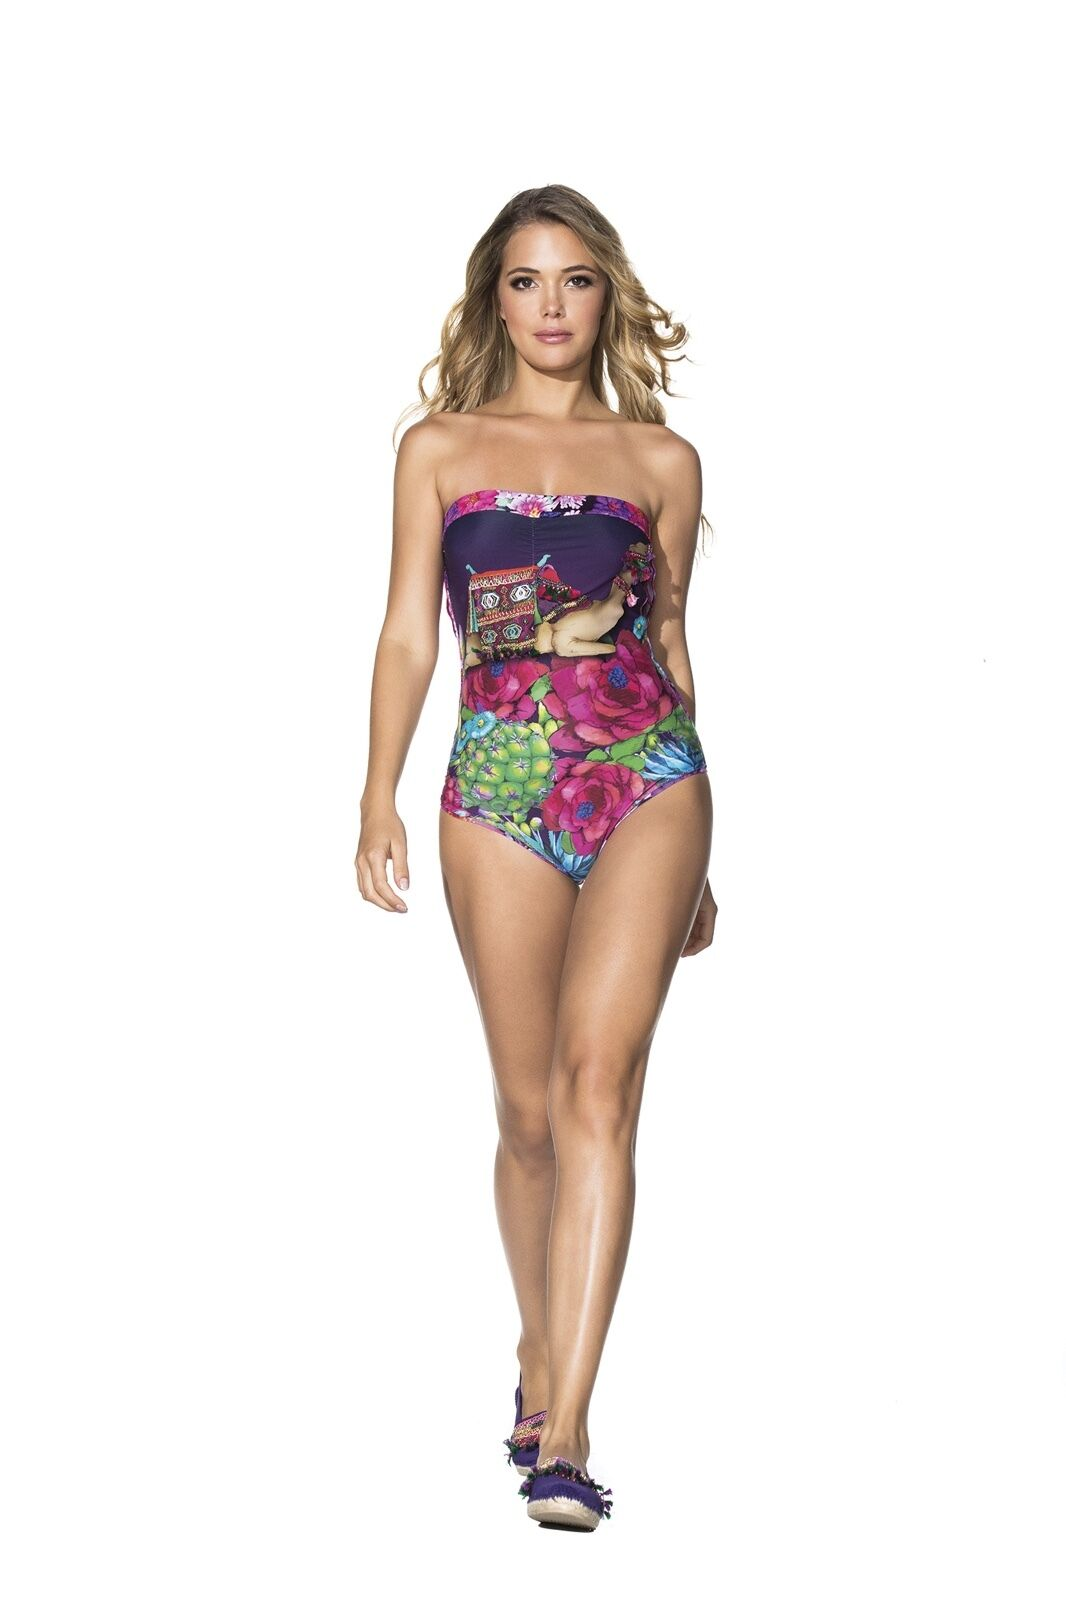 AGUA BENDITA SWIMWEAR BENDITO DESERTICO SMALL ONE PIECE + FREE AB BAG